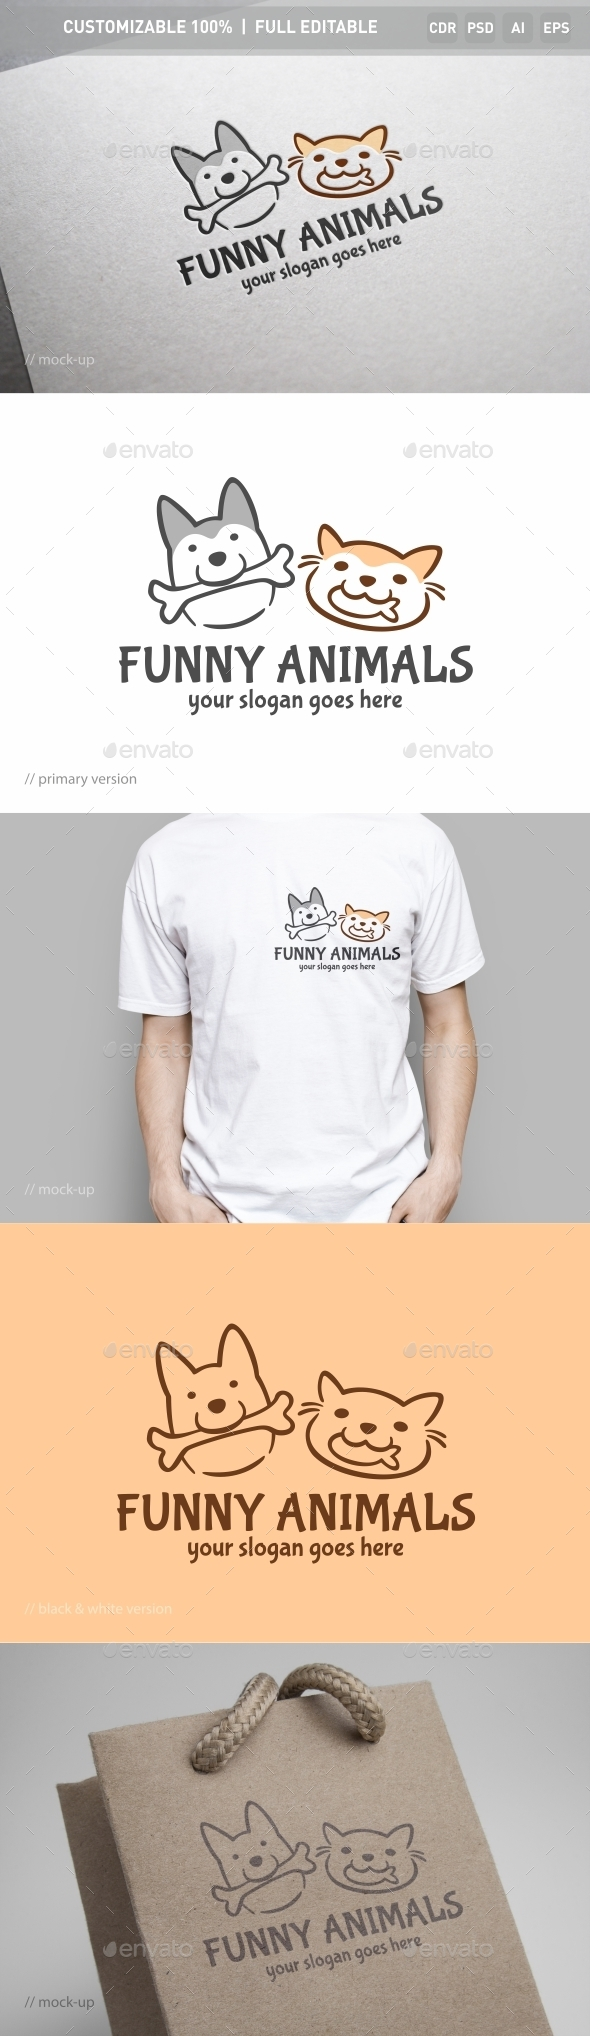 Funny Animals Logo Template - Objects Logo Templates